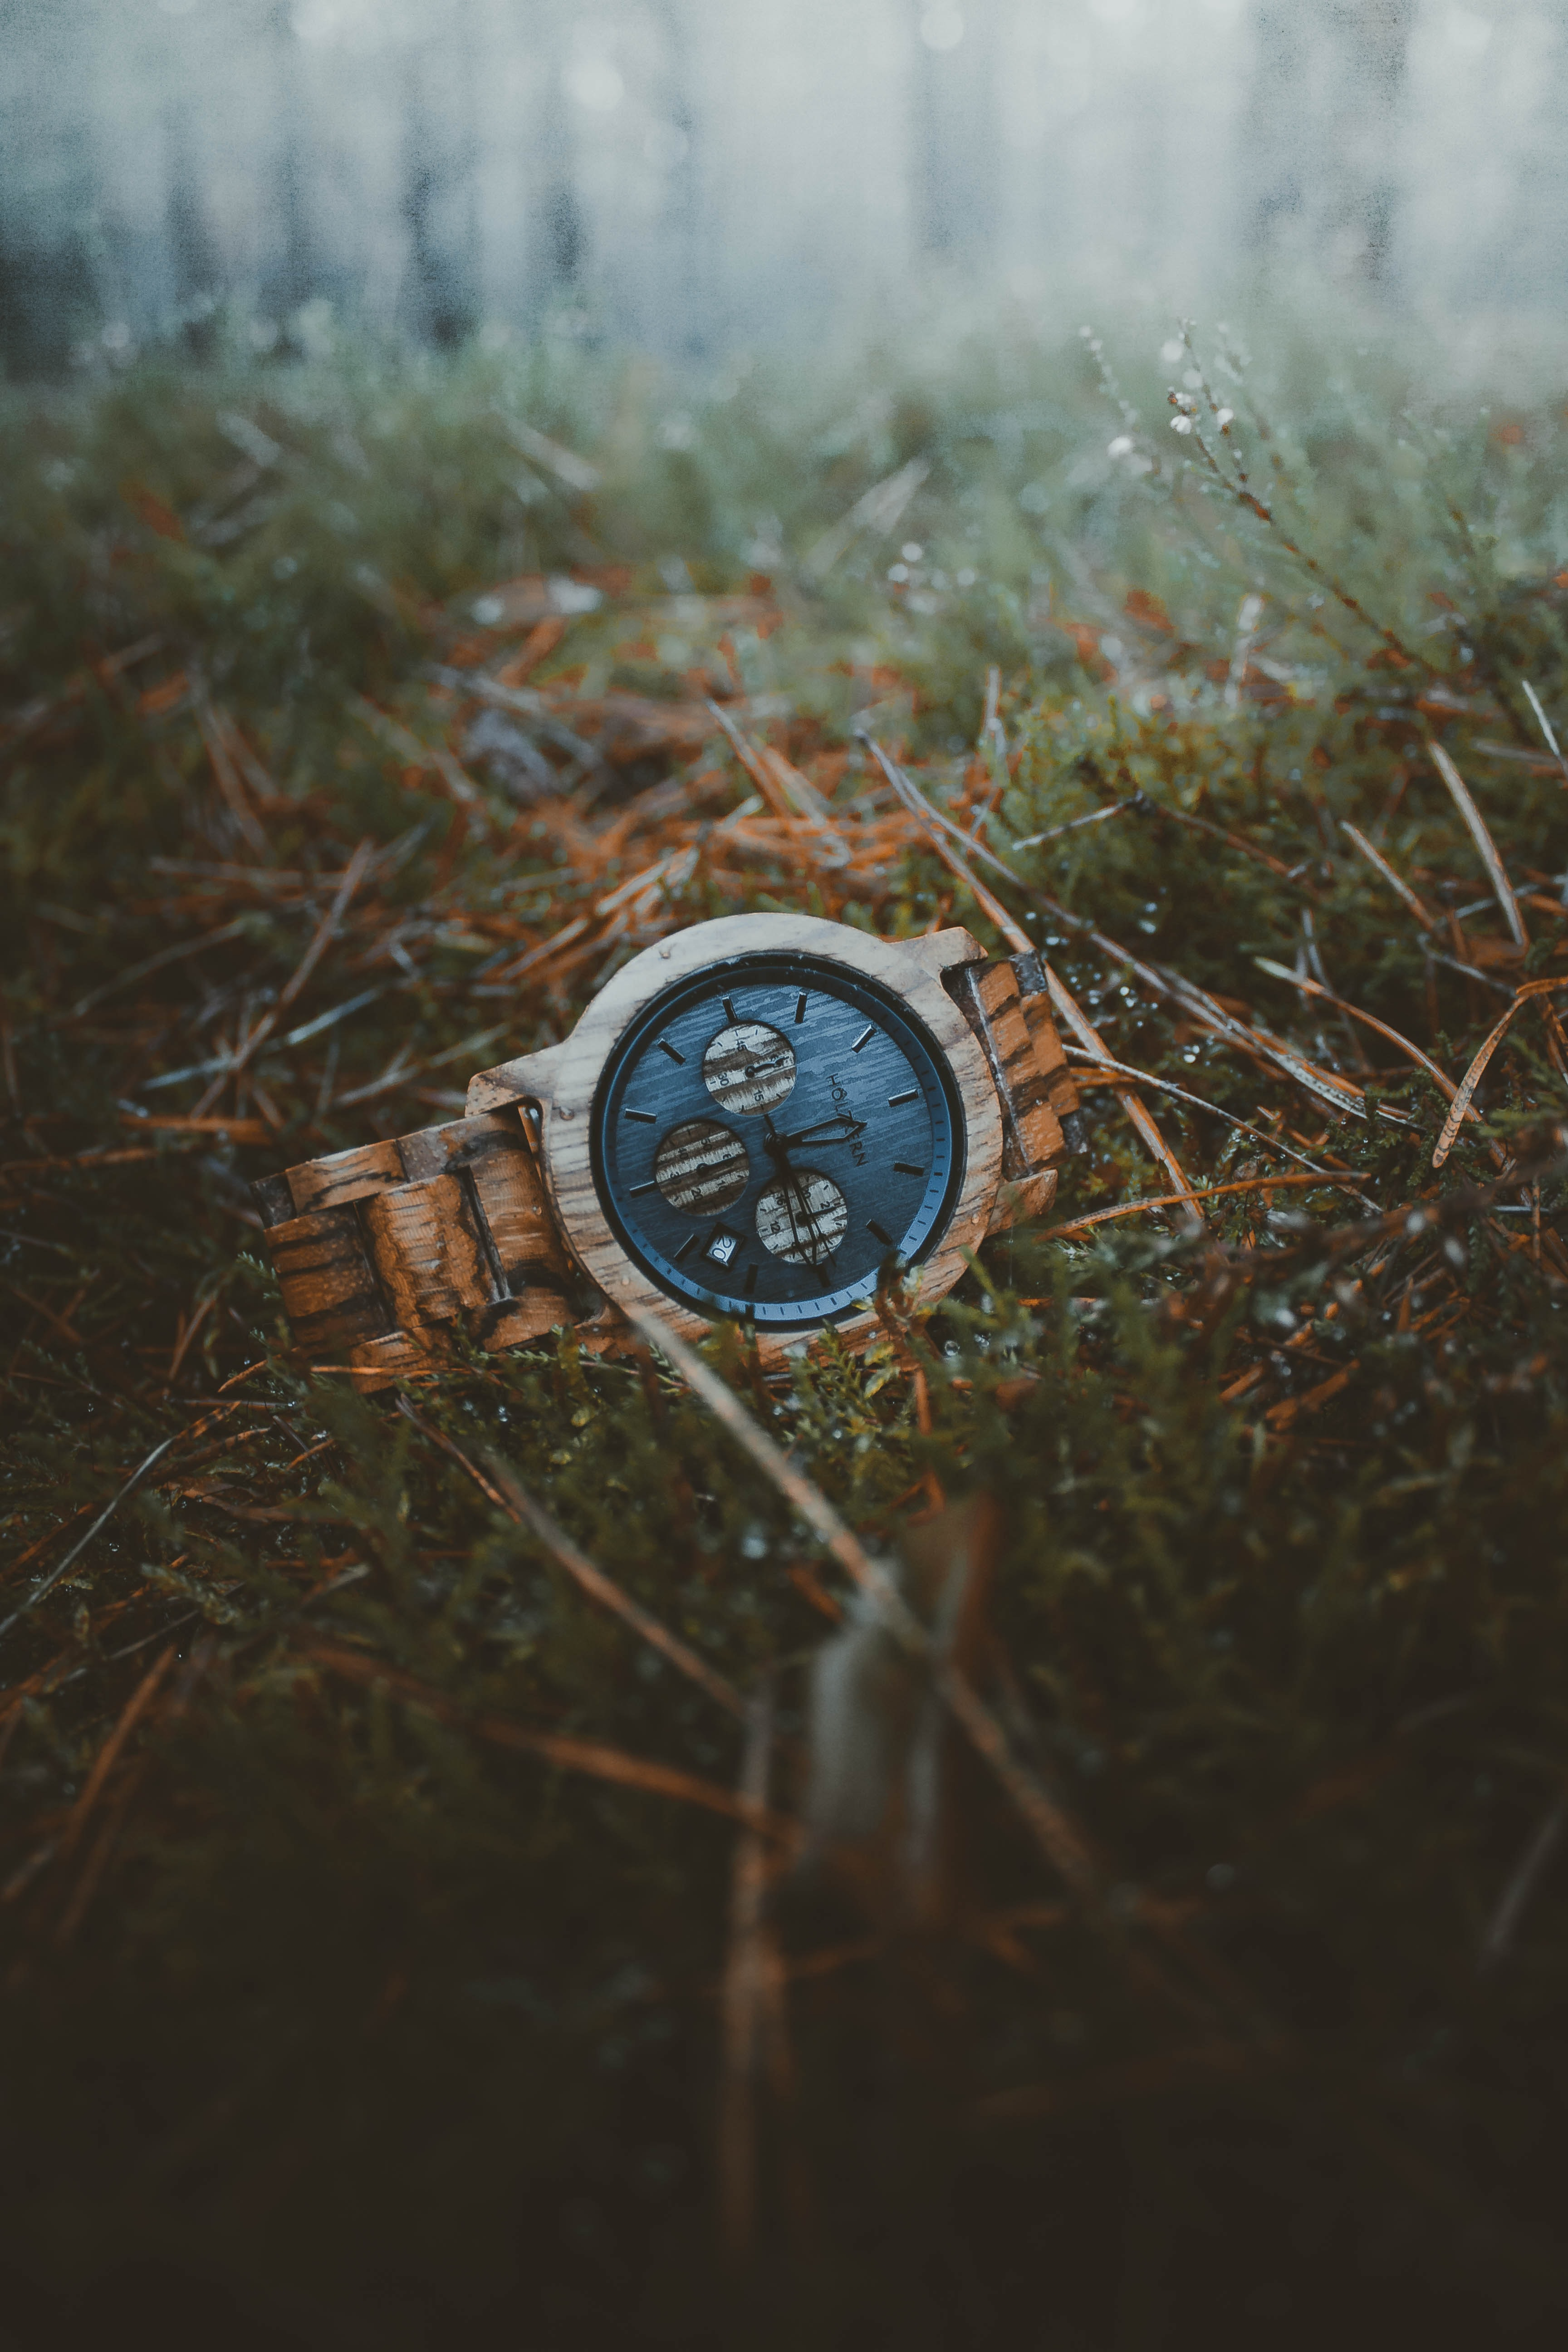 selective focus photography of watch on grass field